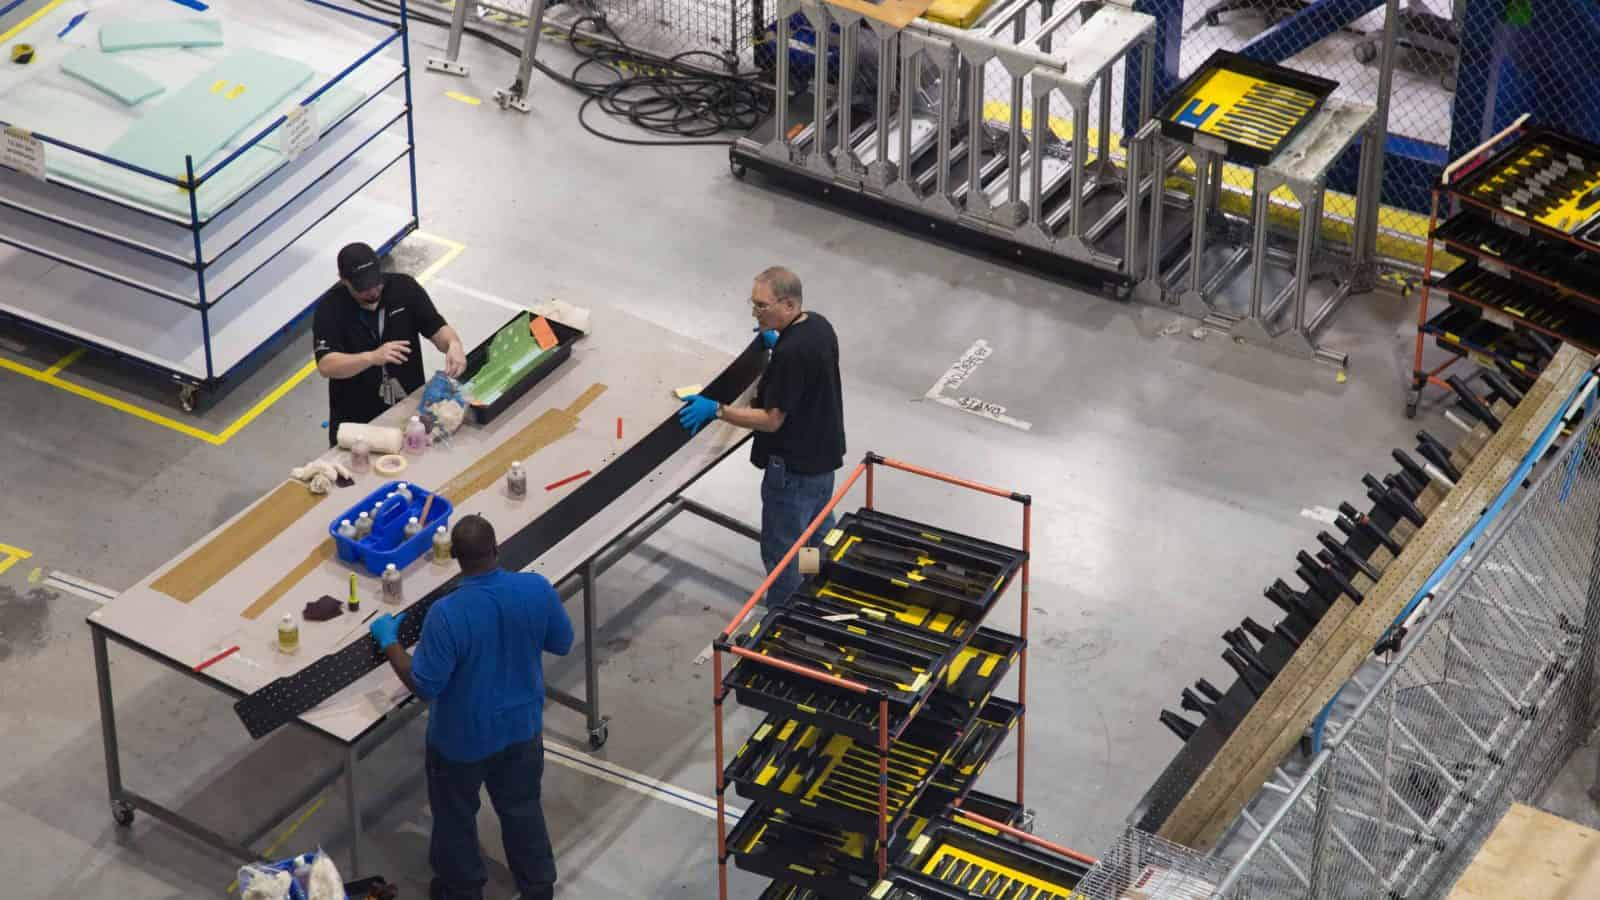 Manufacturing workers make products on a shopfloor.